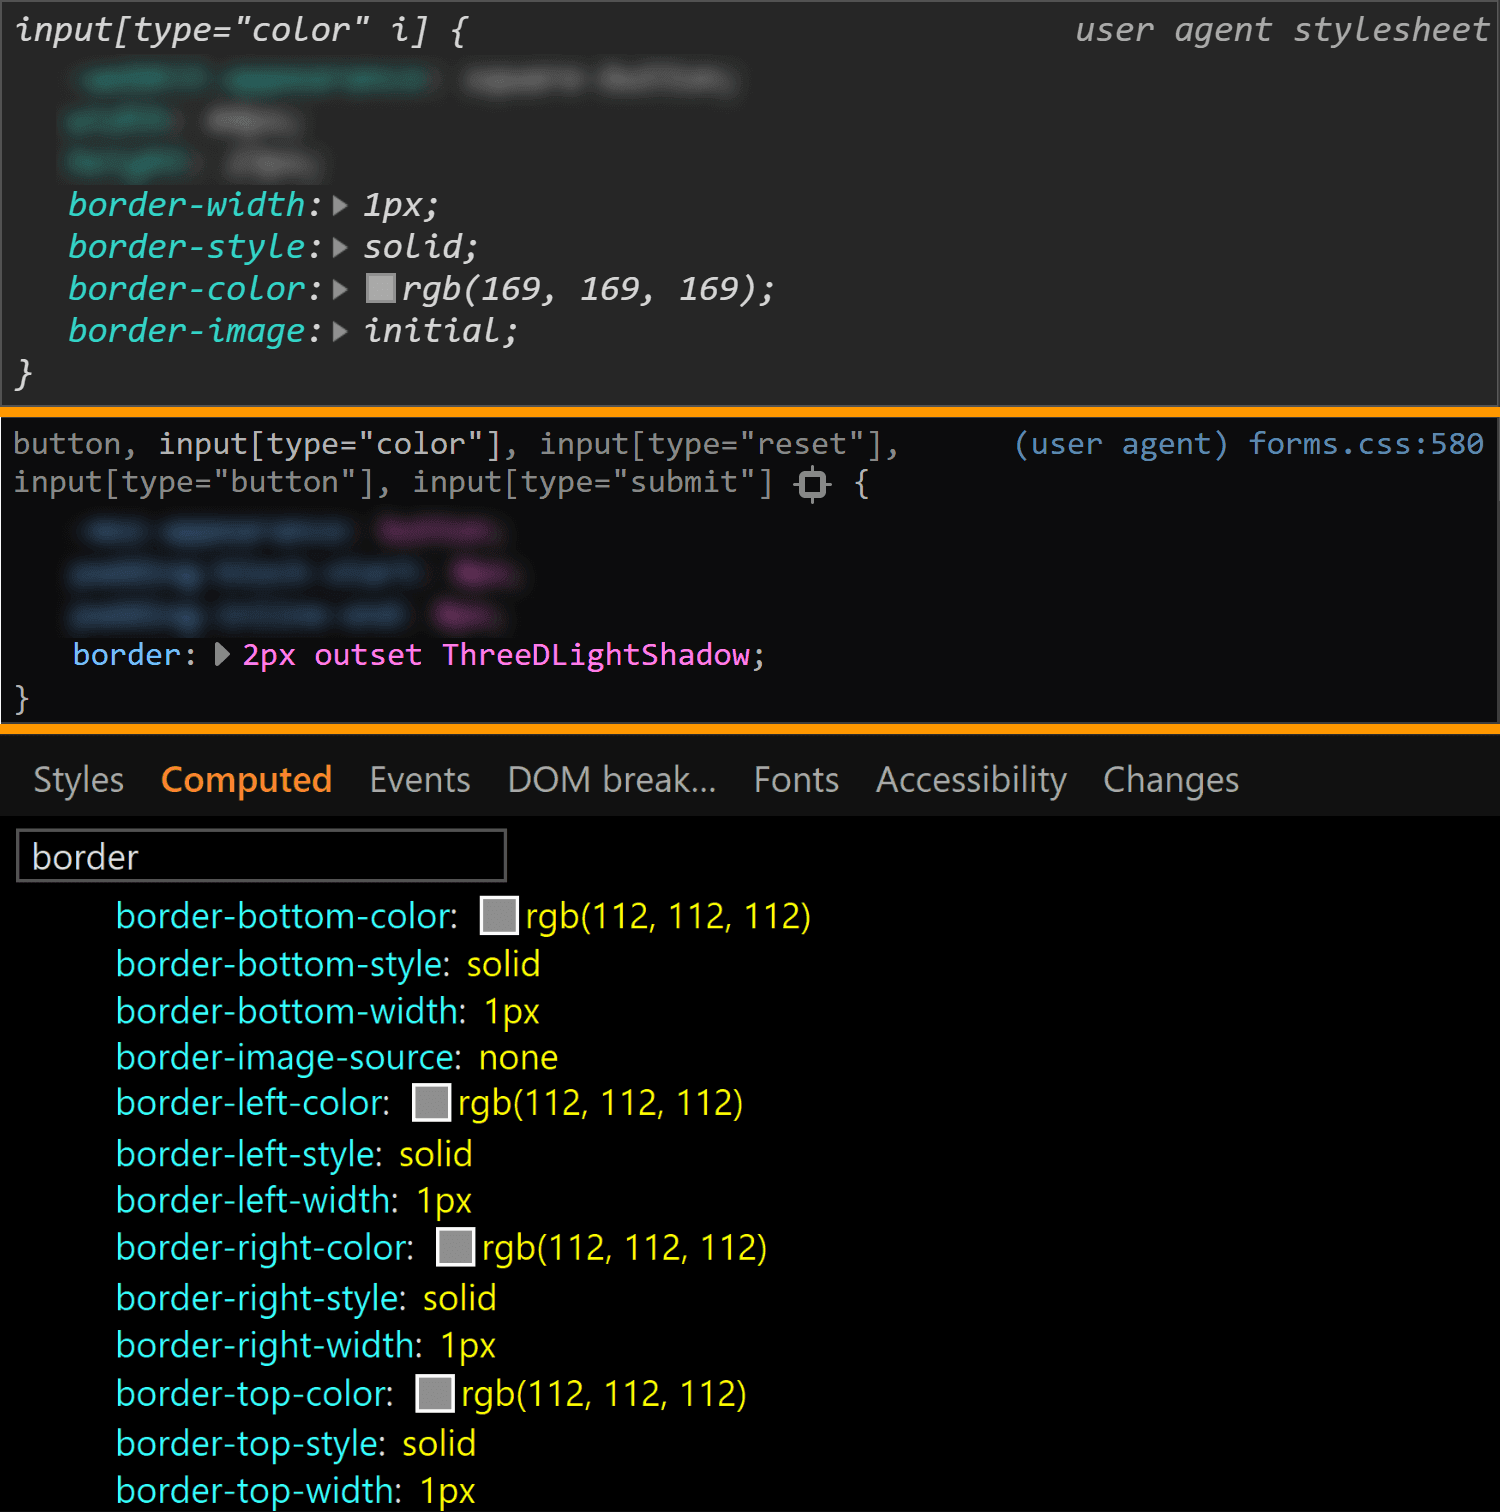 Comparative screenshots of DevTools in the three browsers showing the border values for the actual input.